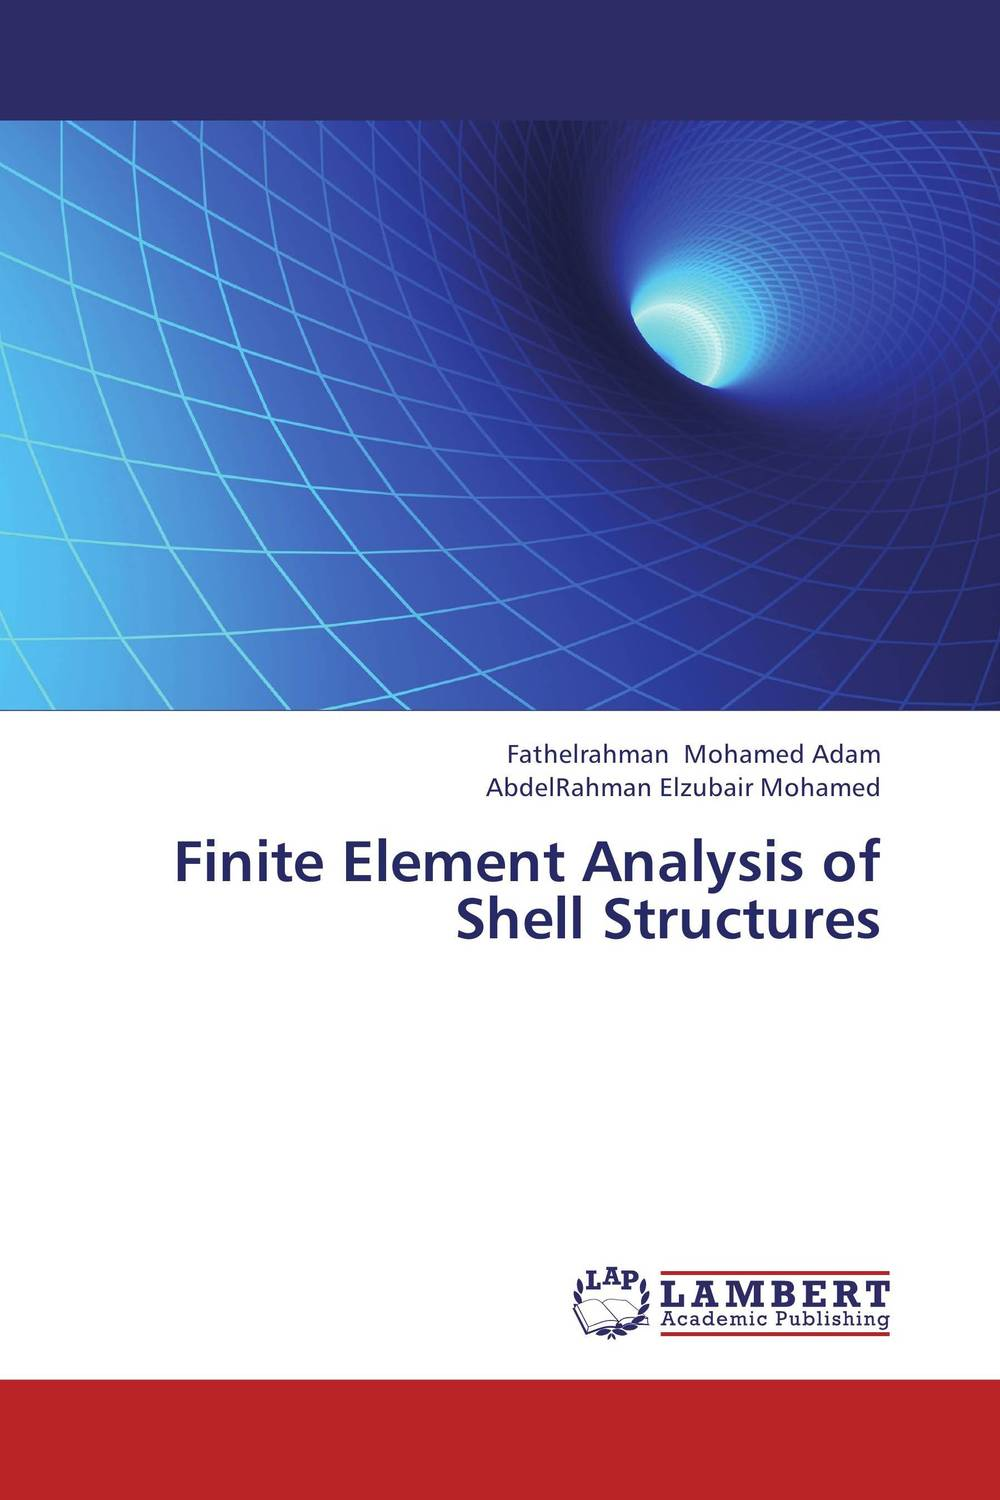 Finite Element Analysis of Shell Structures rd cook cook concepts and applications of finite element analysis 2ed